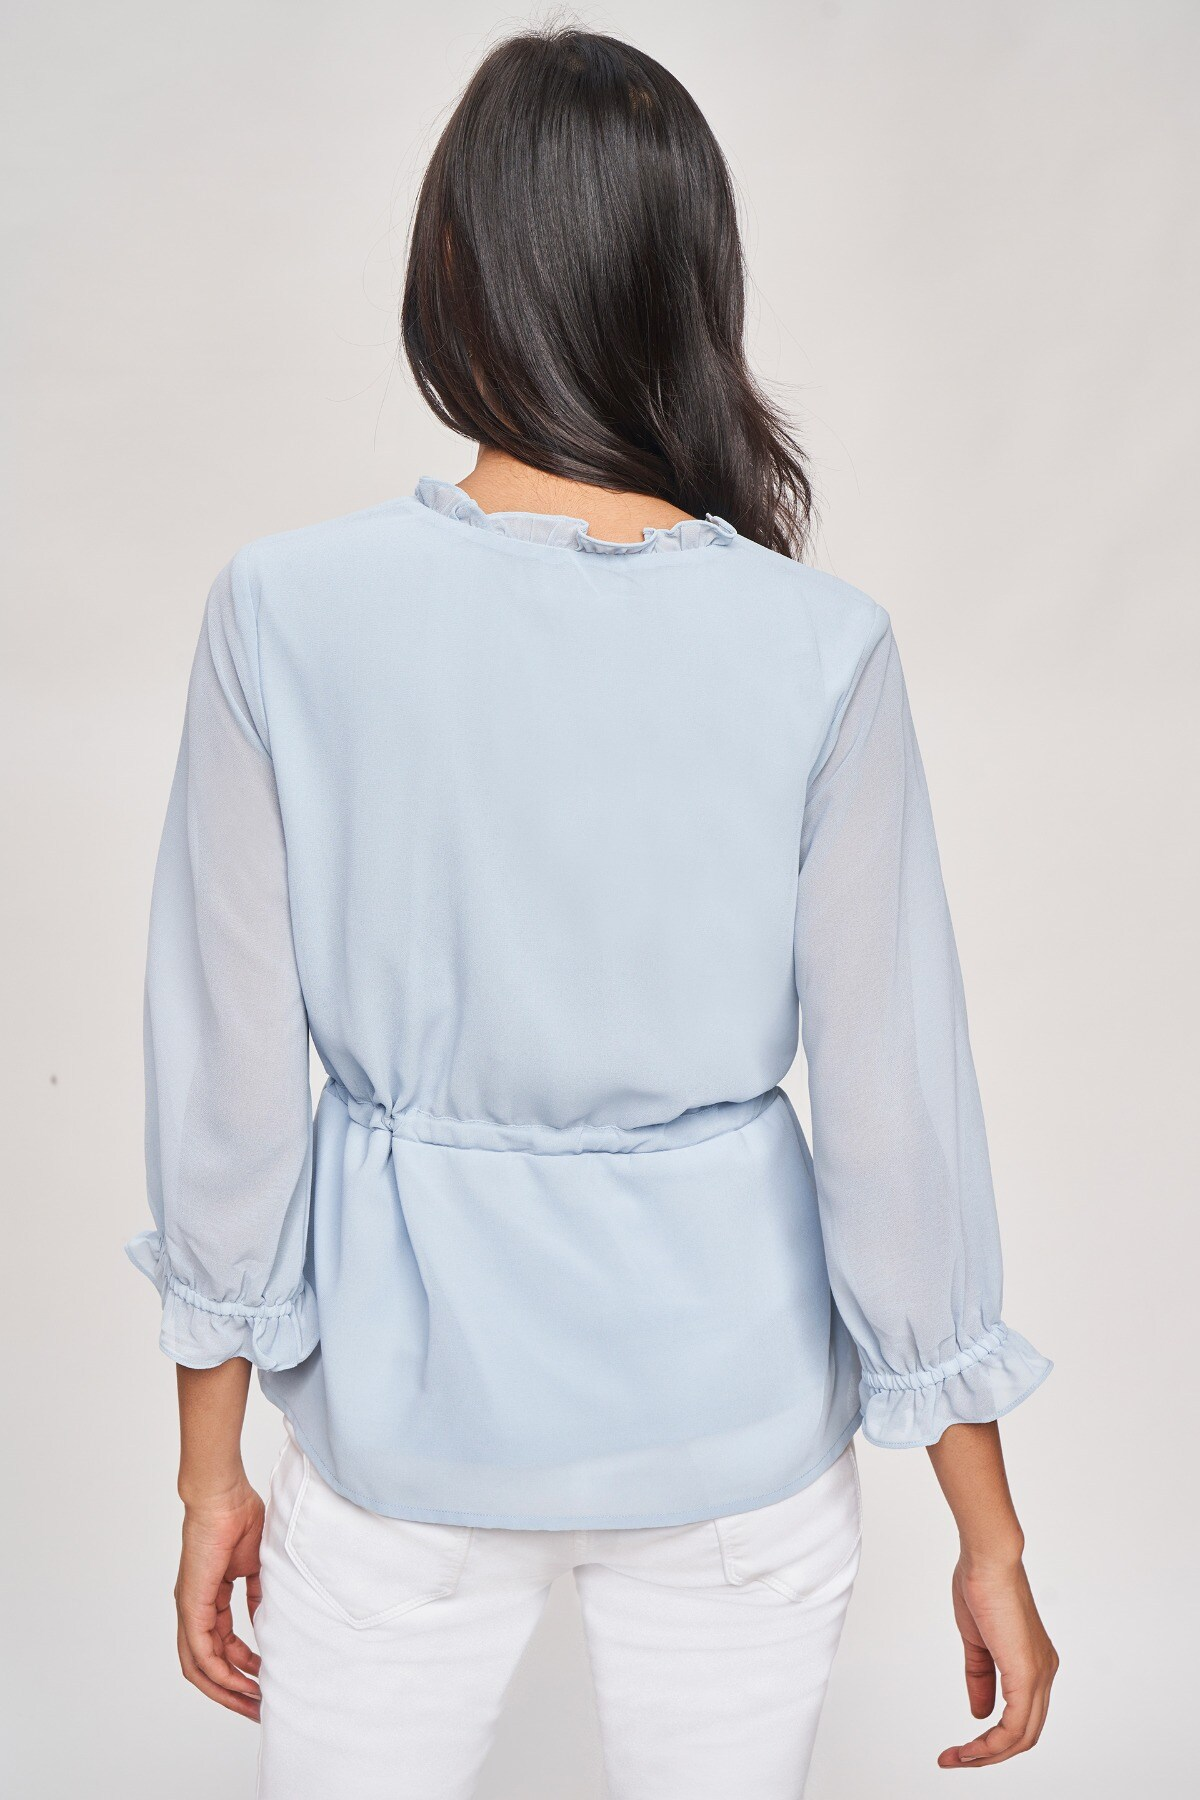 AND   Powder Blue Solid Fit And Flare Top